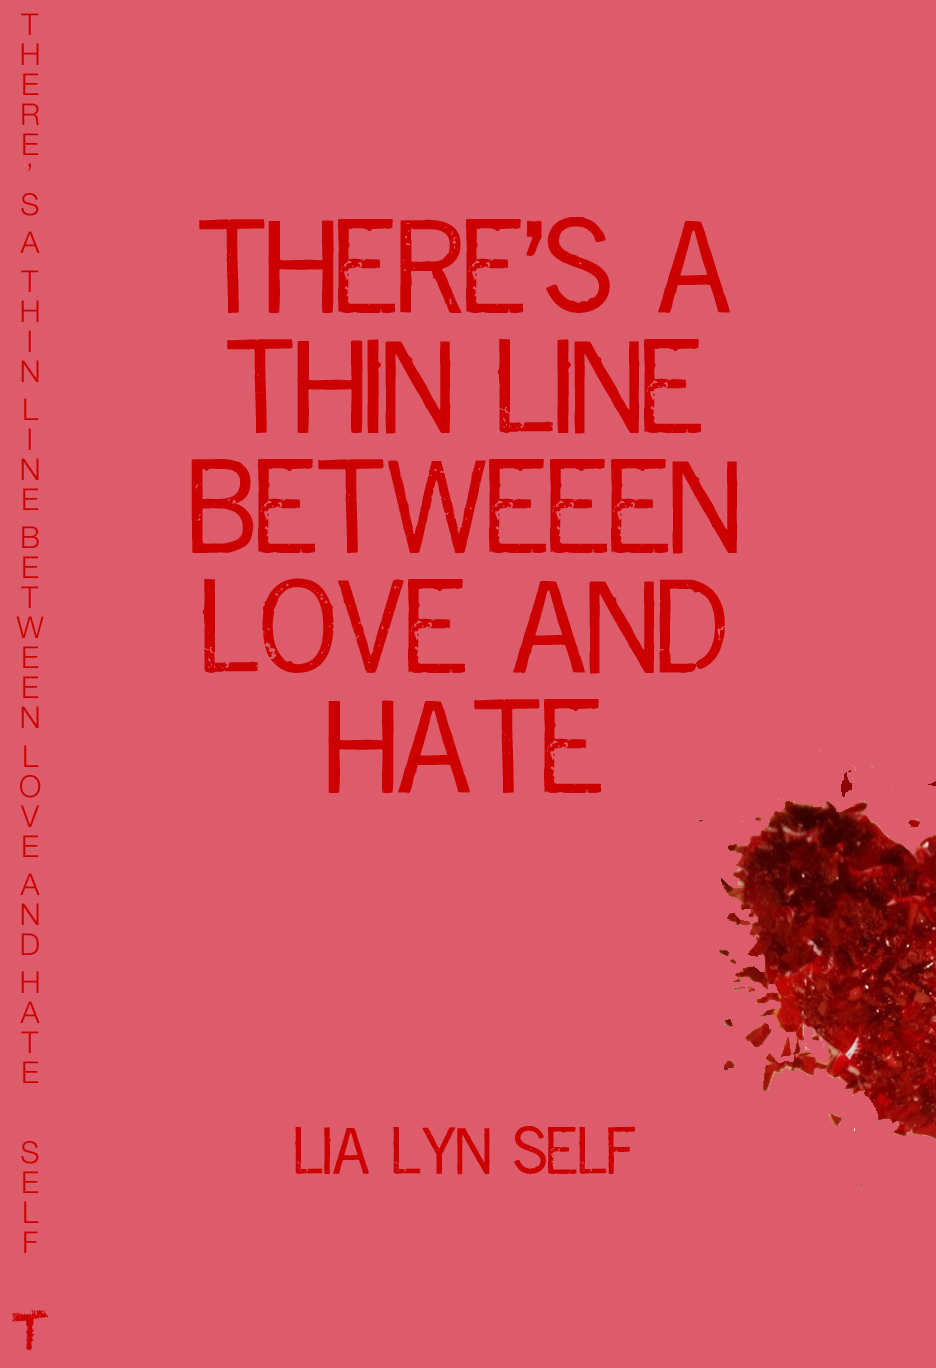 love and hate are one of